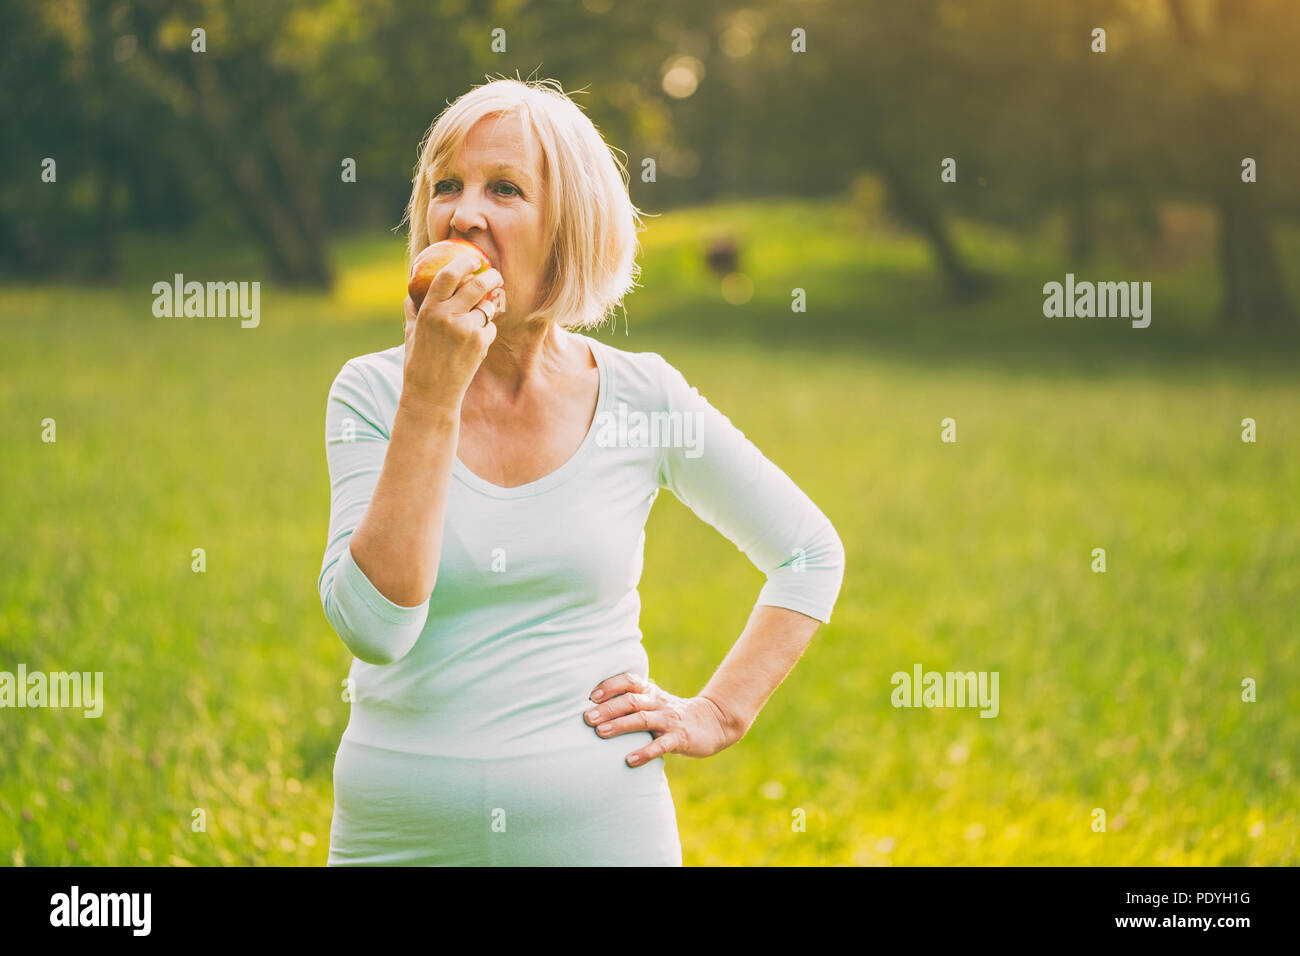 Active senior woman eating apple after exercise.Image is intentionally toned. - Stock Image